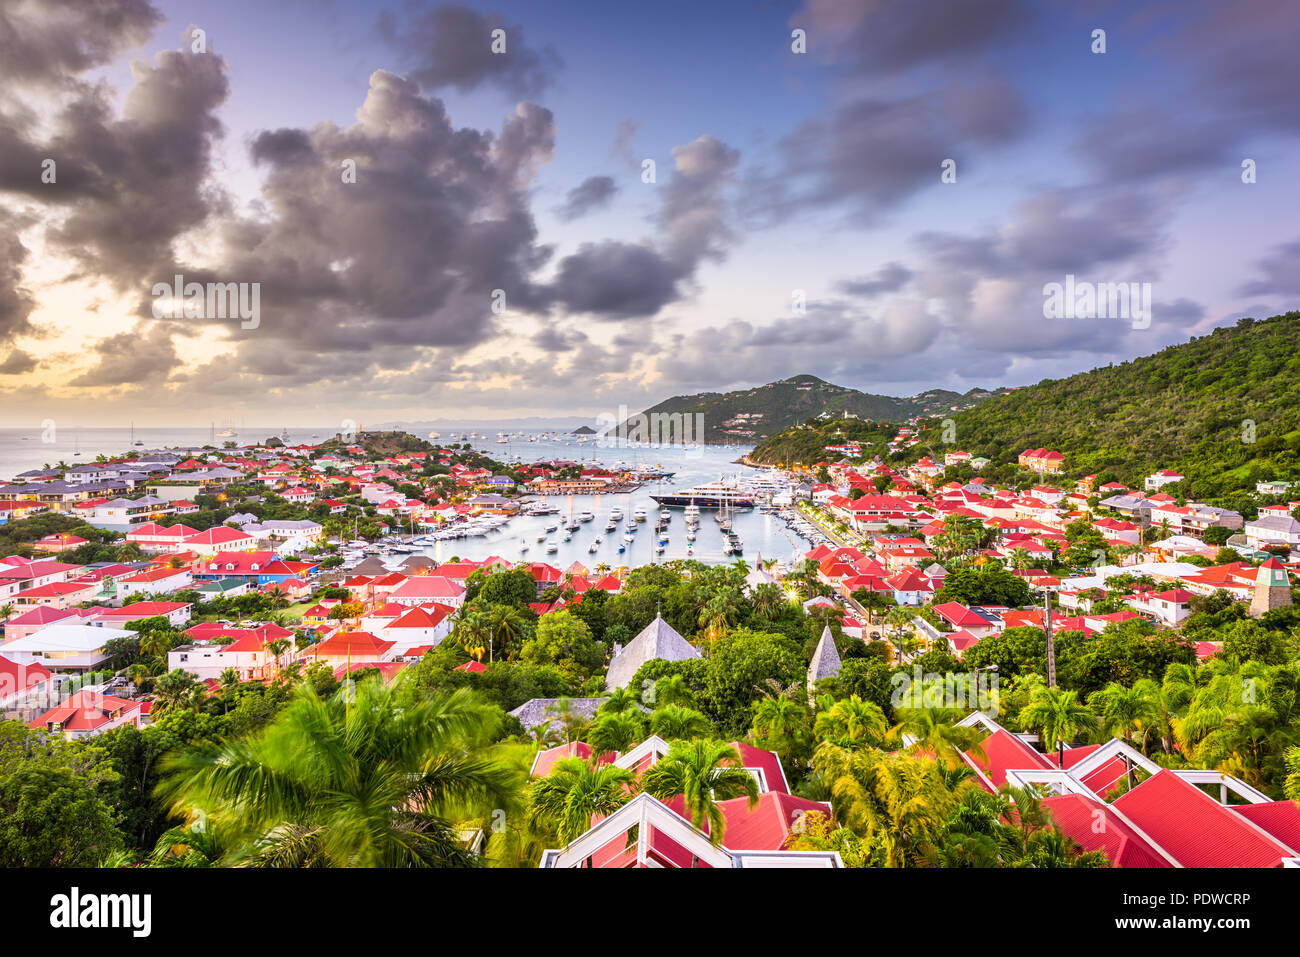 Gustavia, St. Barths town skyline in the Carribean at dusk. Stock Photo